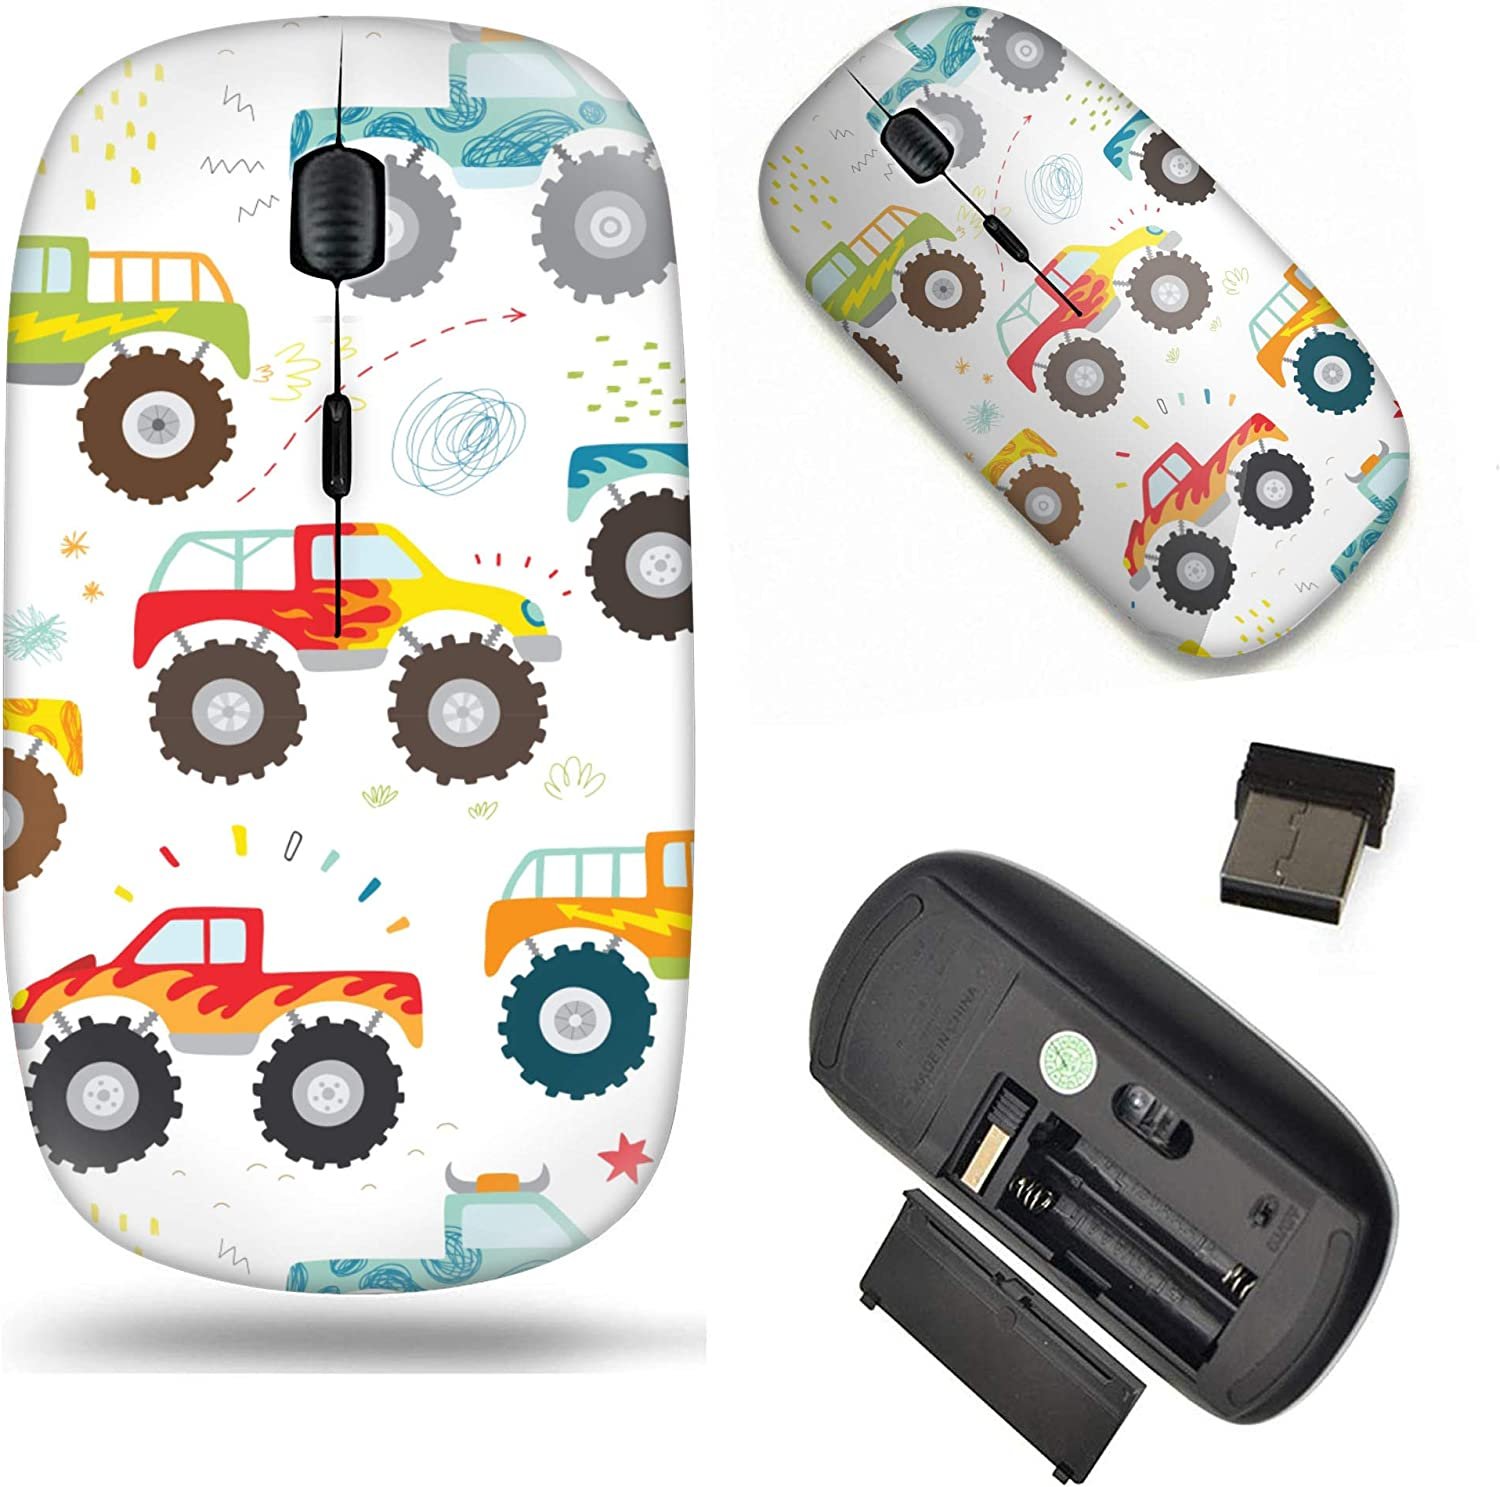 Unique Pattern Year-end gift Raleigh Mall Optical Mice Mobile Wireless Mouse Portable 2.4G